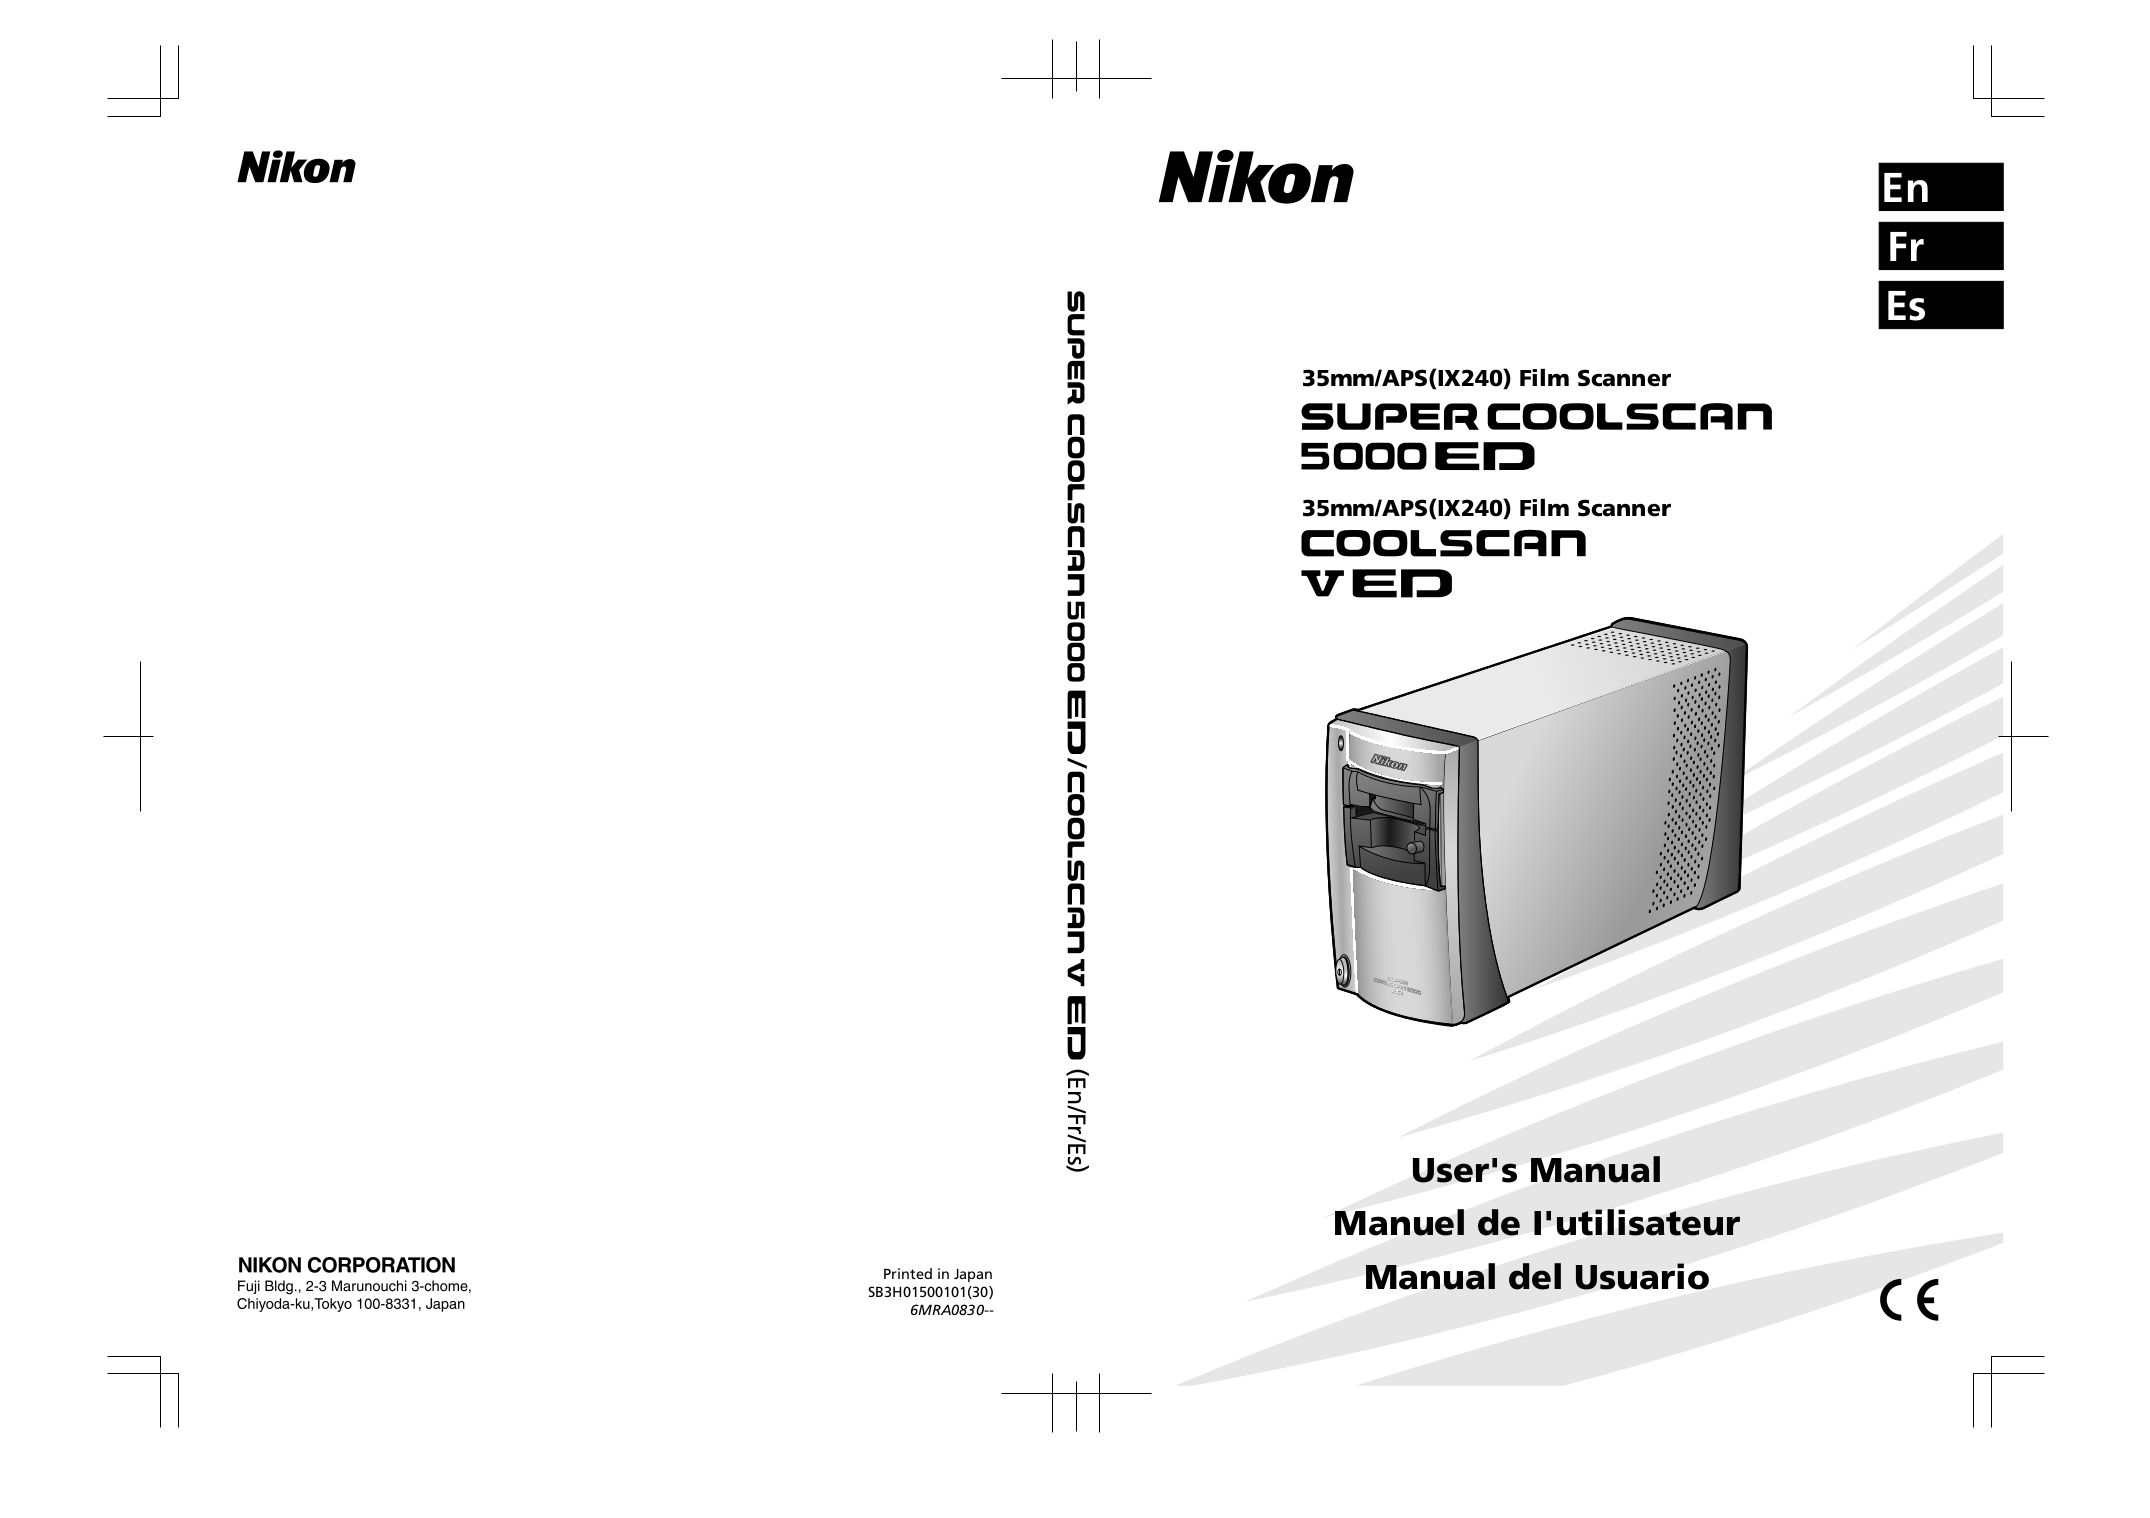 pdf for Nikon Other SF-210 Camera Slide Feeder Adapter manual